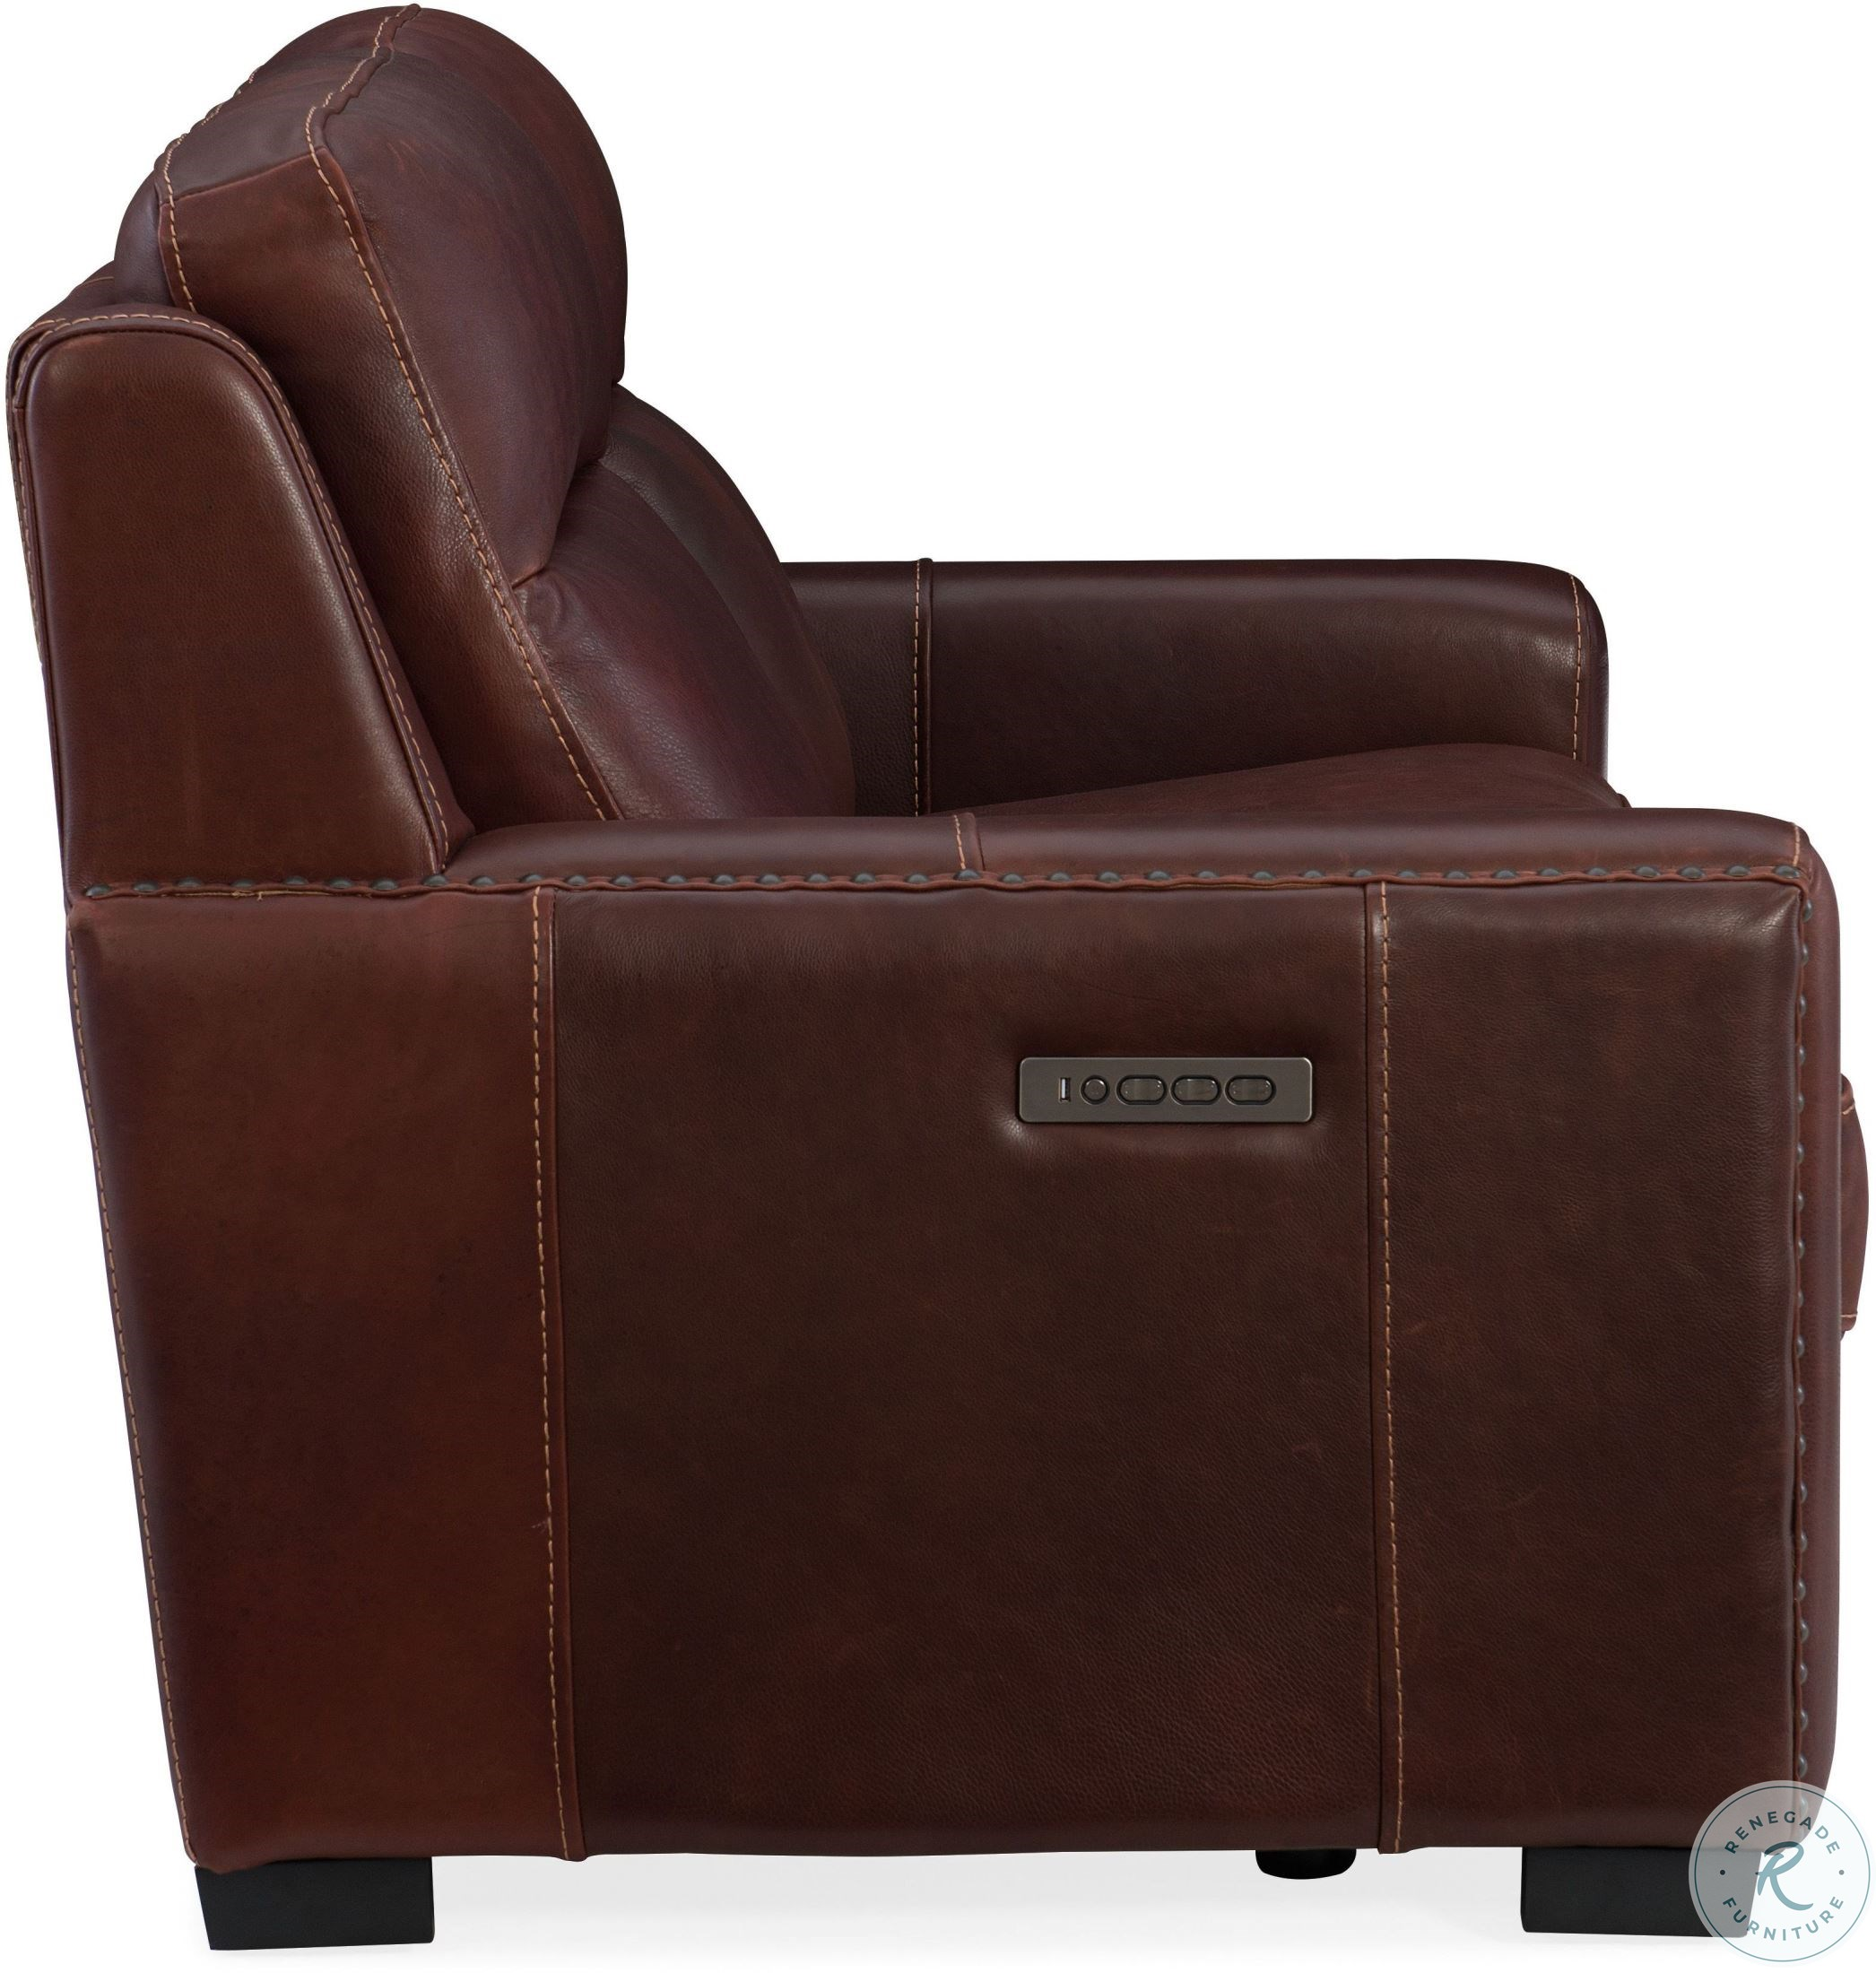 Admirable Aviator Chaldan Rust Leather Leather Power Reclining Loveseat With Power Headrest And Power Lumbar Caraccident5 Cool Chair Designs And Ideas Caraccident5Info